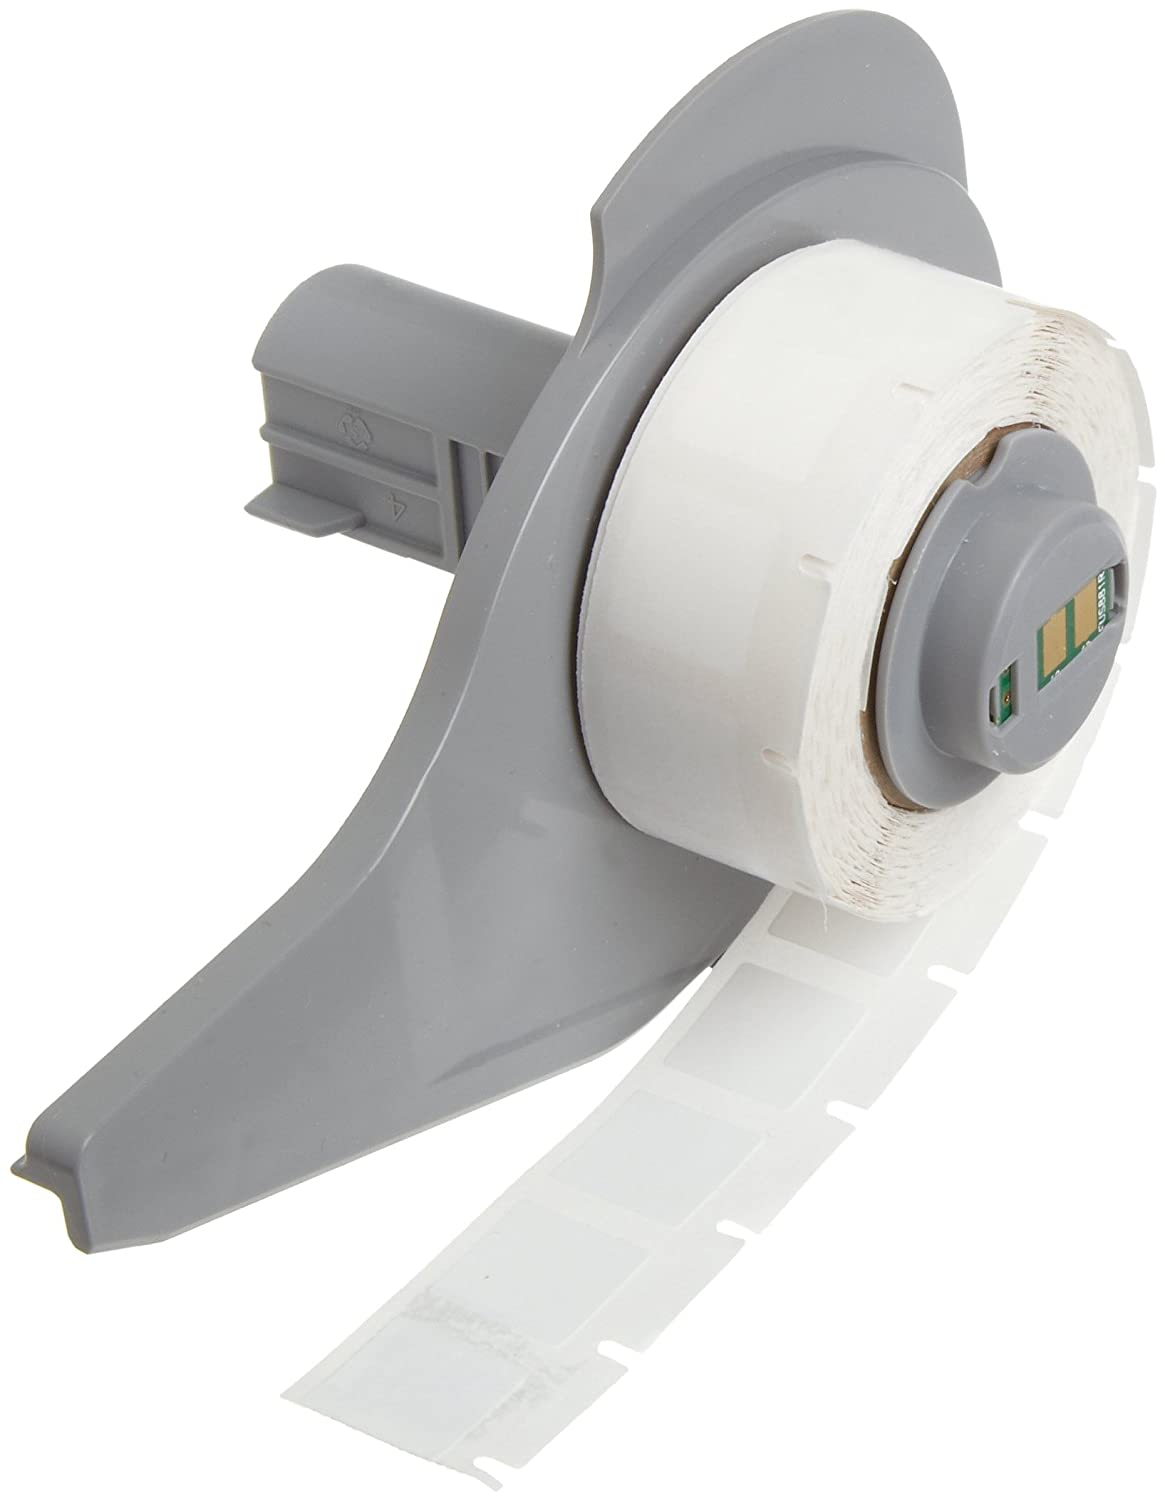 Brady M71-6-423 BradyBondz 0.5 Width x 0.275 Height White Color B-423 Permanent Polyester Labels With Gloss Finish For BMP71 Thermal Transfer Portable Printer 750 Per Roll